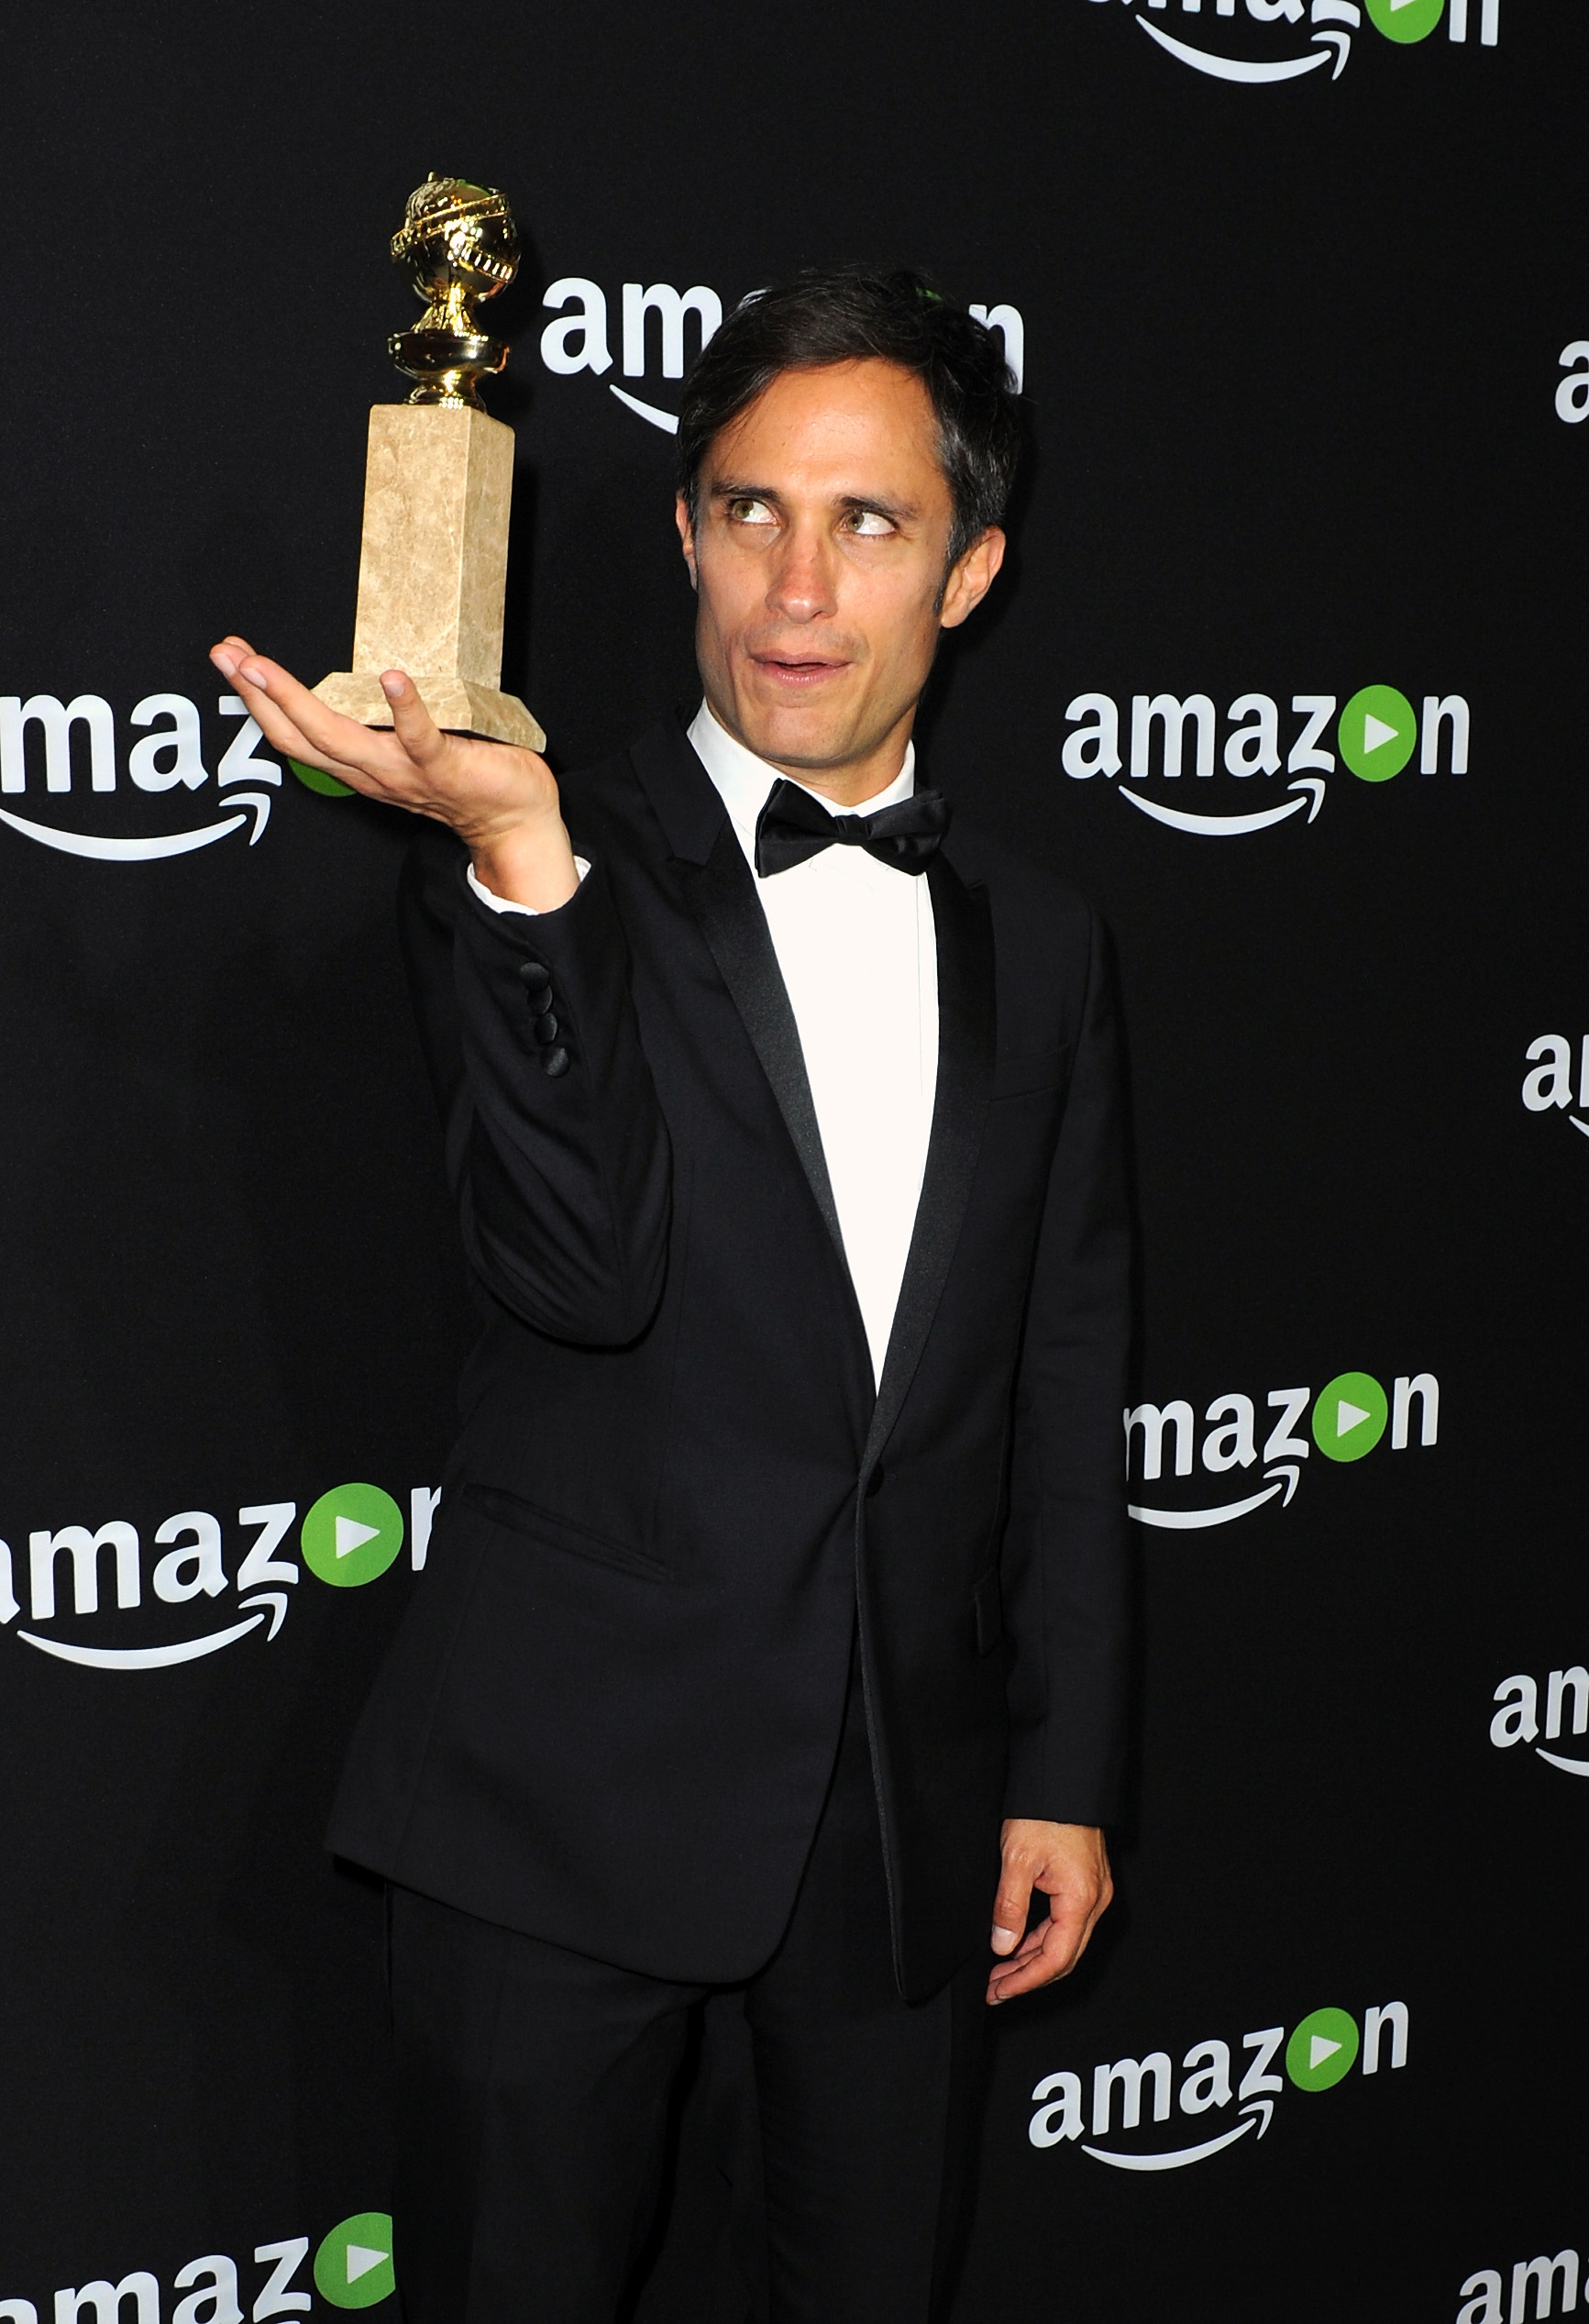 BEVERLY HILLS, CA - JANUARY 10: Actor Gael Garcia Bernal, winner of Best Performance in a Television Series - Musical or Comedy for 'Mozart in the Jungle,' attends Amazon Studios Golden Globe Awards Party at The Beverly Hilton Hotel on January 10, 2016 in Beverly Hills, California. Joshua Blanchard/Getty Images/AFP